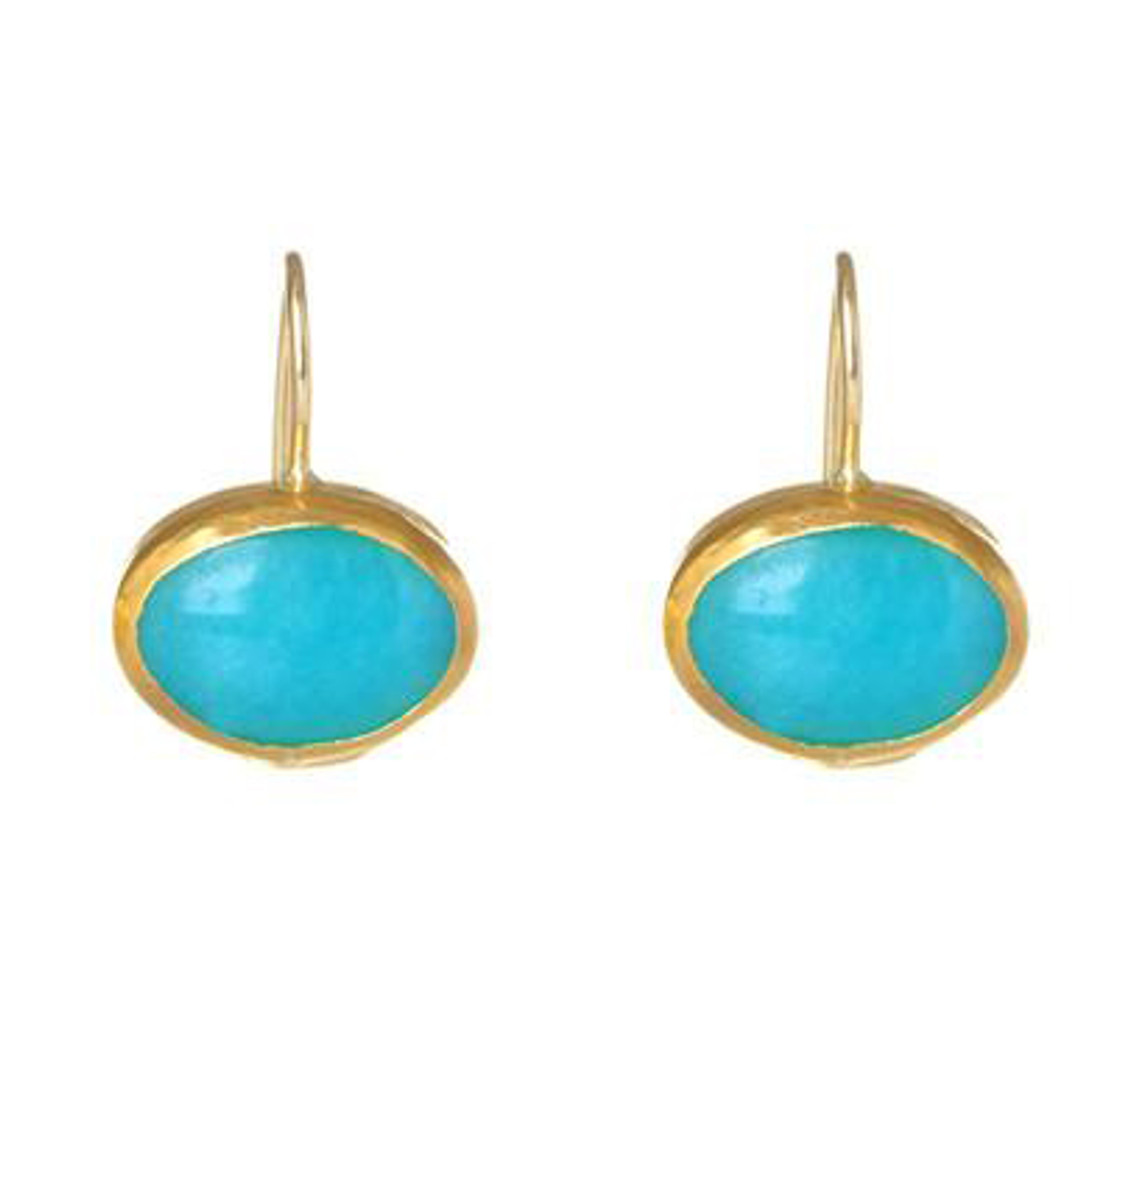 Amazon Earrings by Nava Zahavi - New Arrival